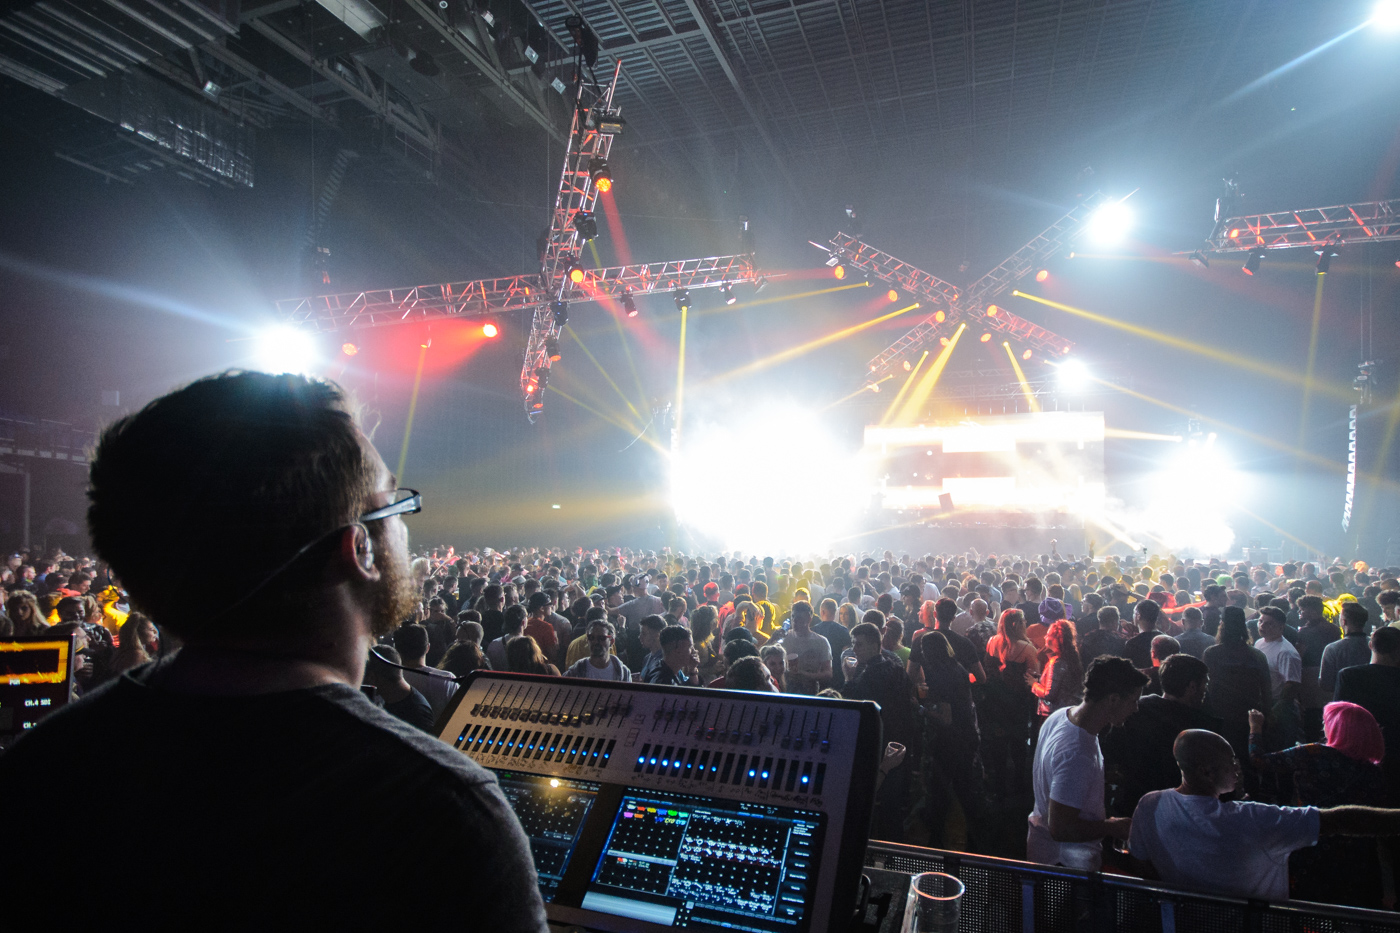 winterparty-at-3arena-dublin-30-10-2016-by-sean-smyth-36-of-53